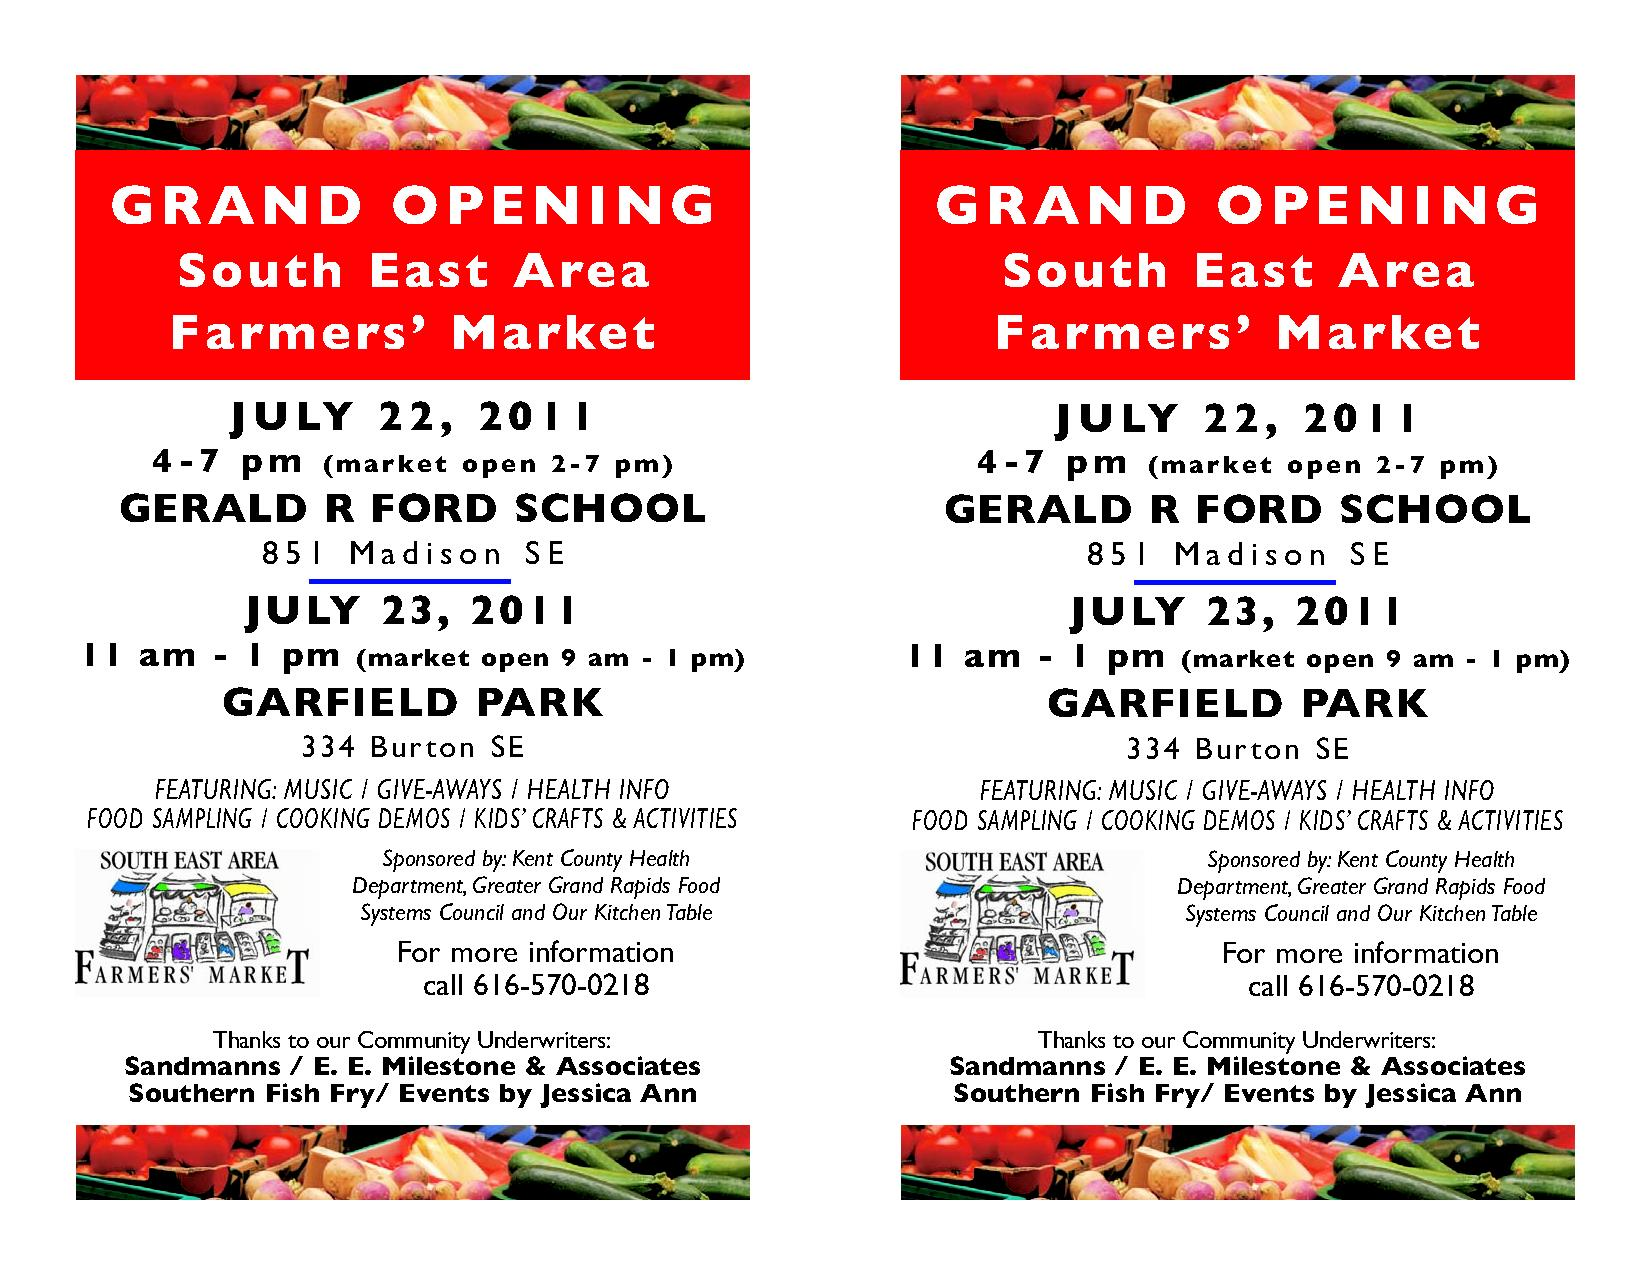 southeast area farmers market grand opening flyer our kitchen table advertisements